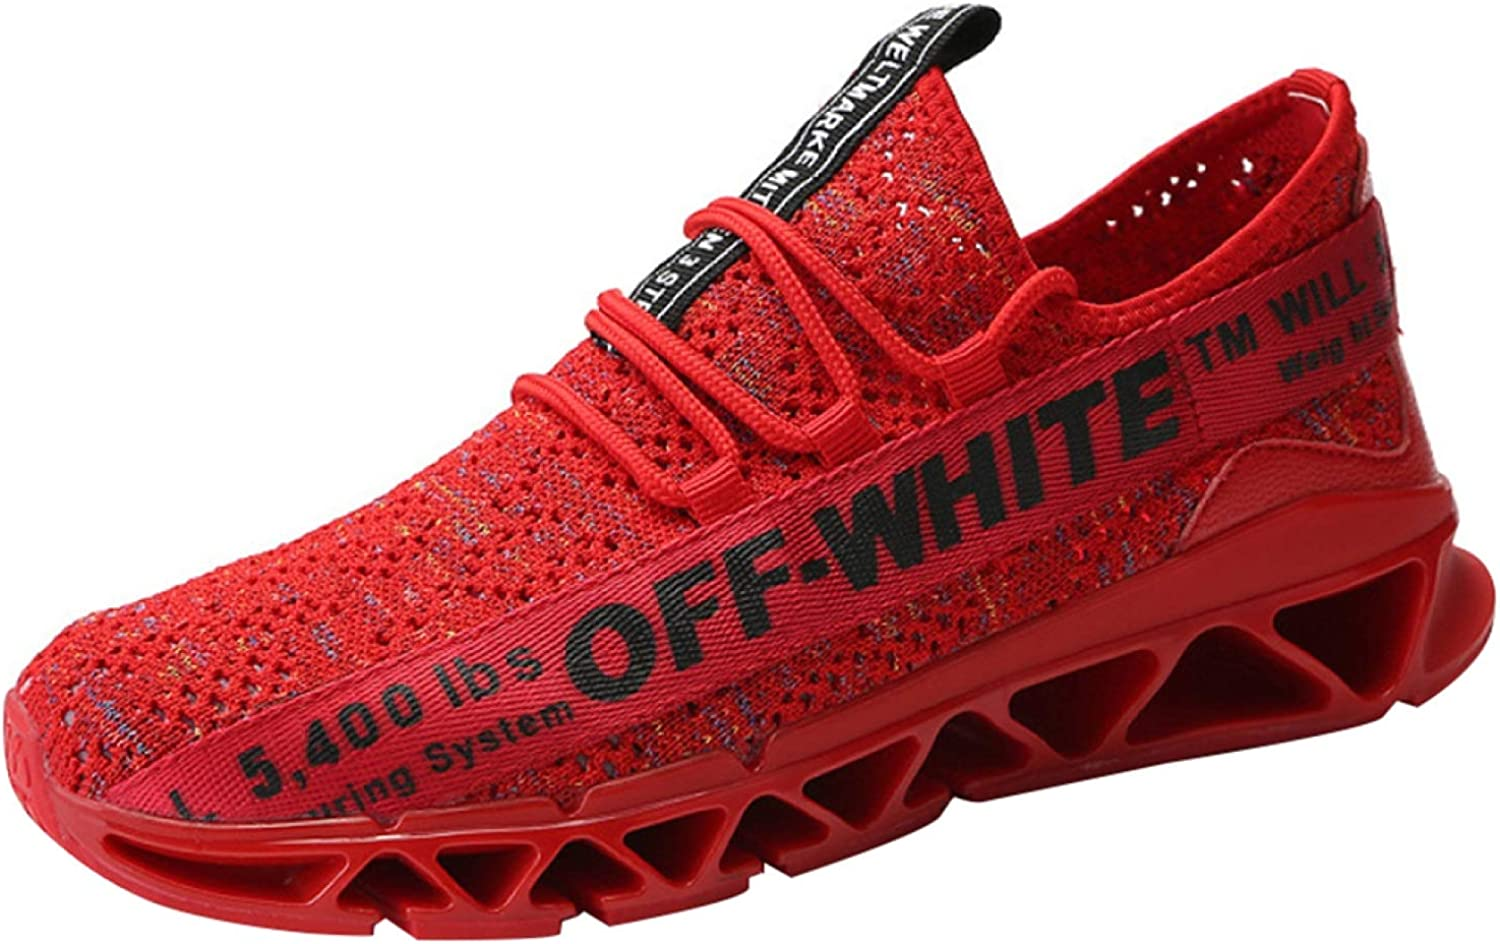 Mens shoes Casual Walking Sneakers Slip On Outdoor Sport shoes Running Four Seasons Leisure (color   Red2, Size   42EU)